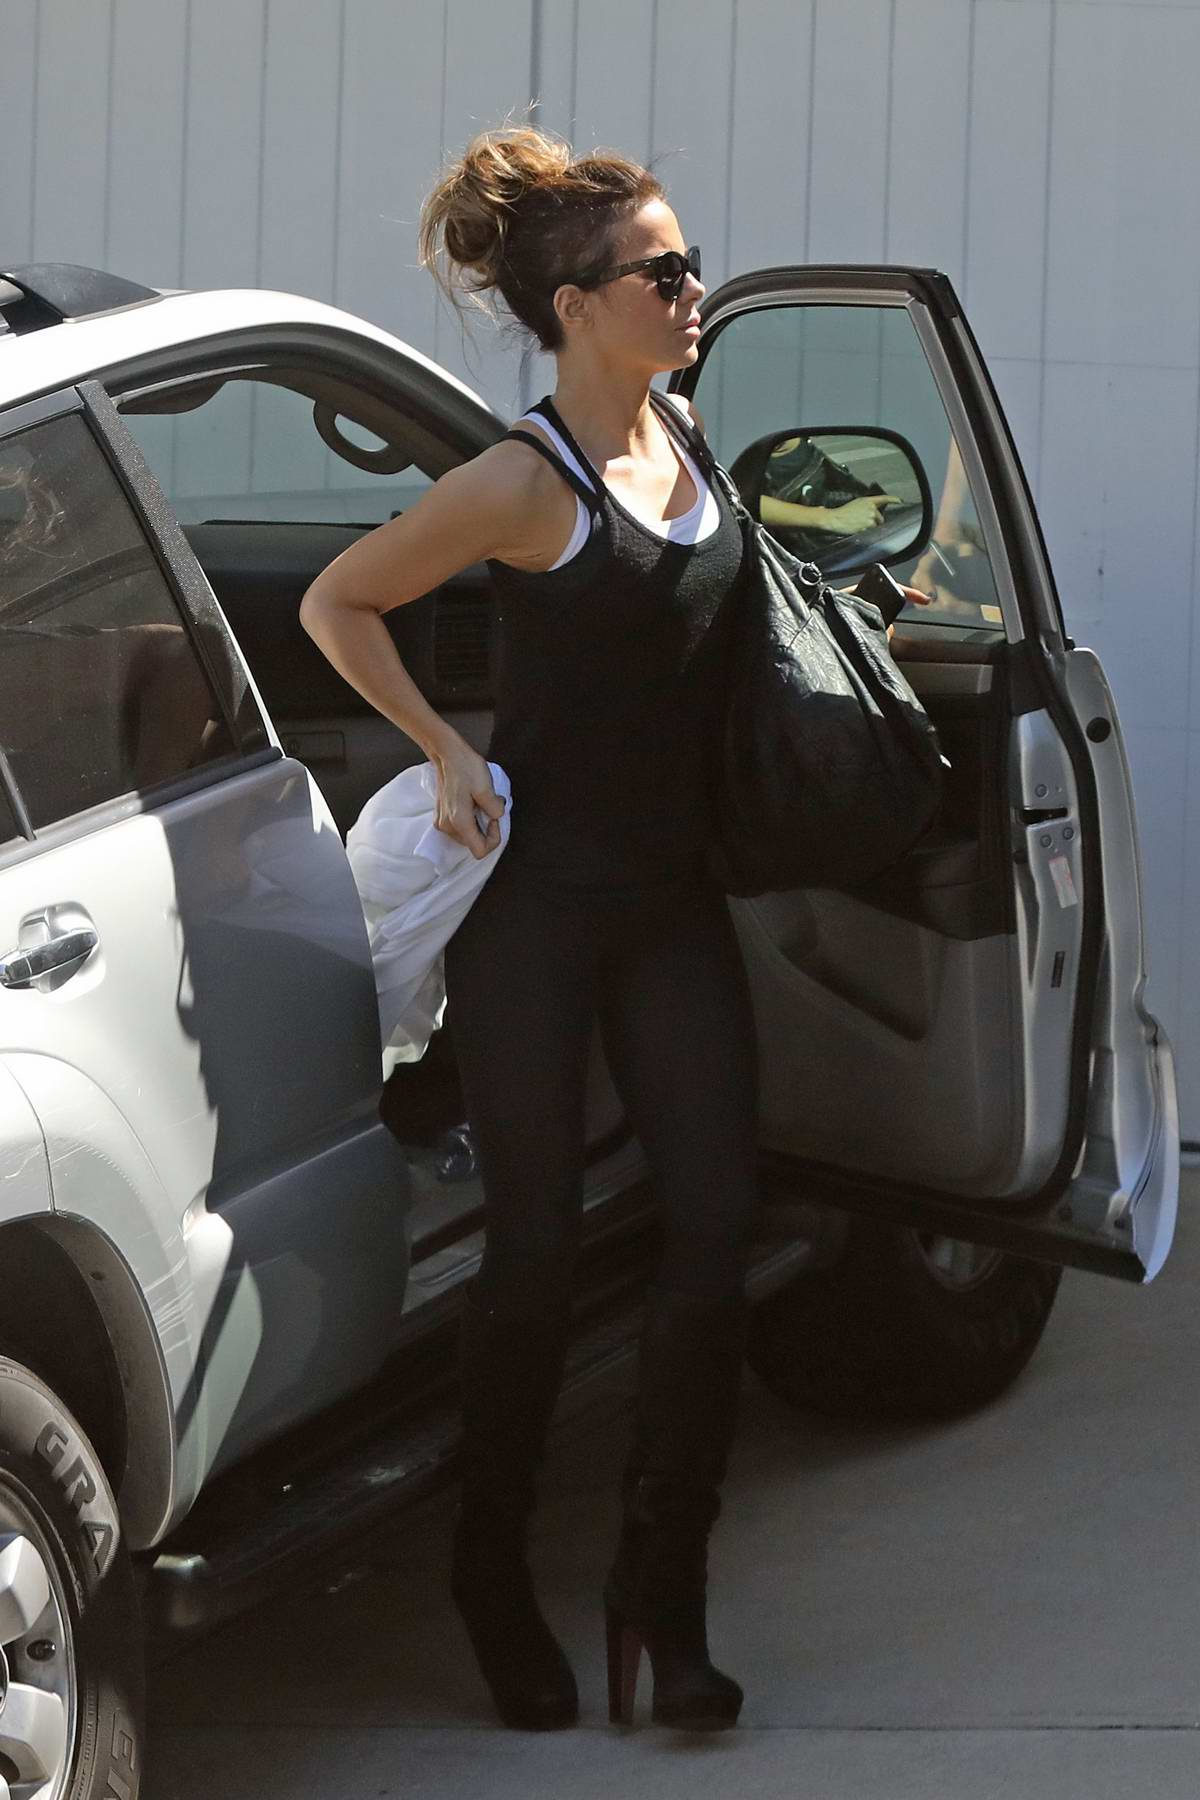 Kate Beckinsale rocks black tank top with matching leggings and knee high boots as she heads home from a gym in Los Angeles